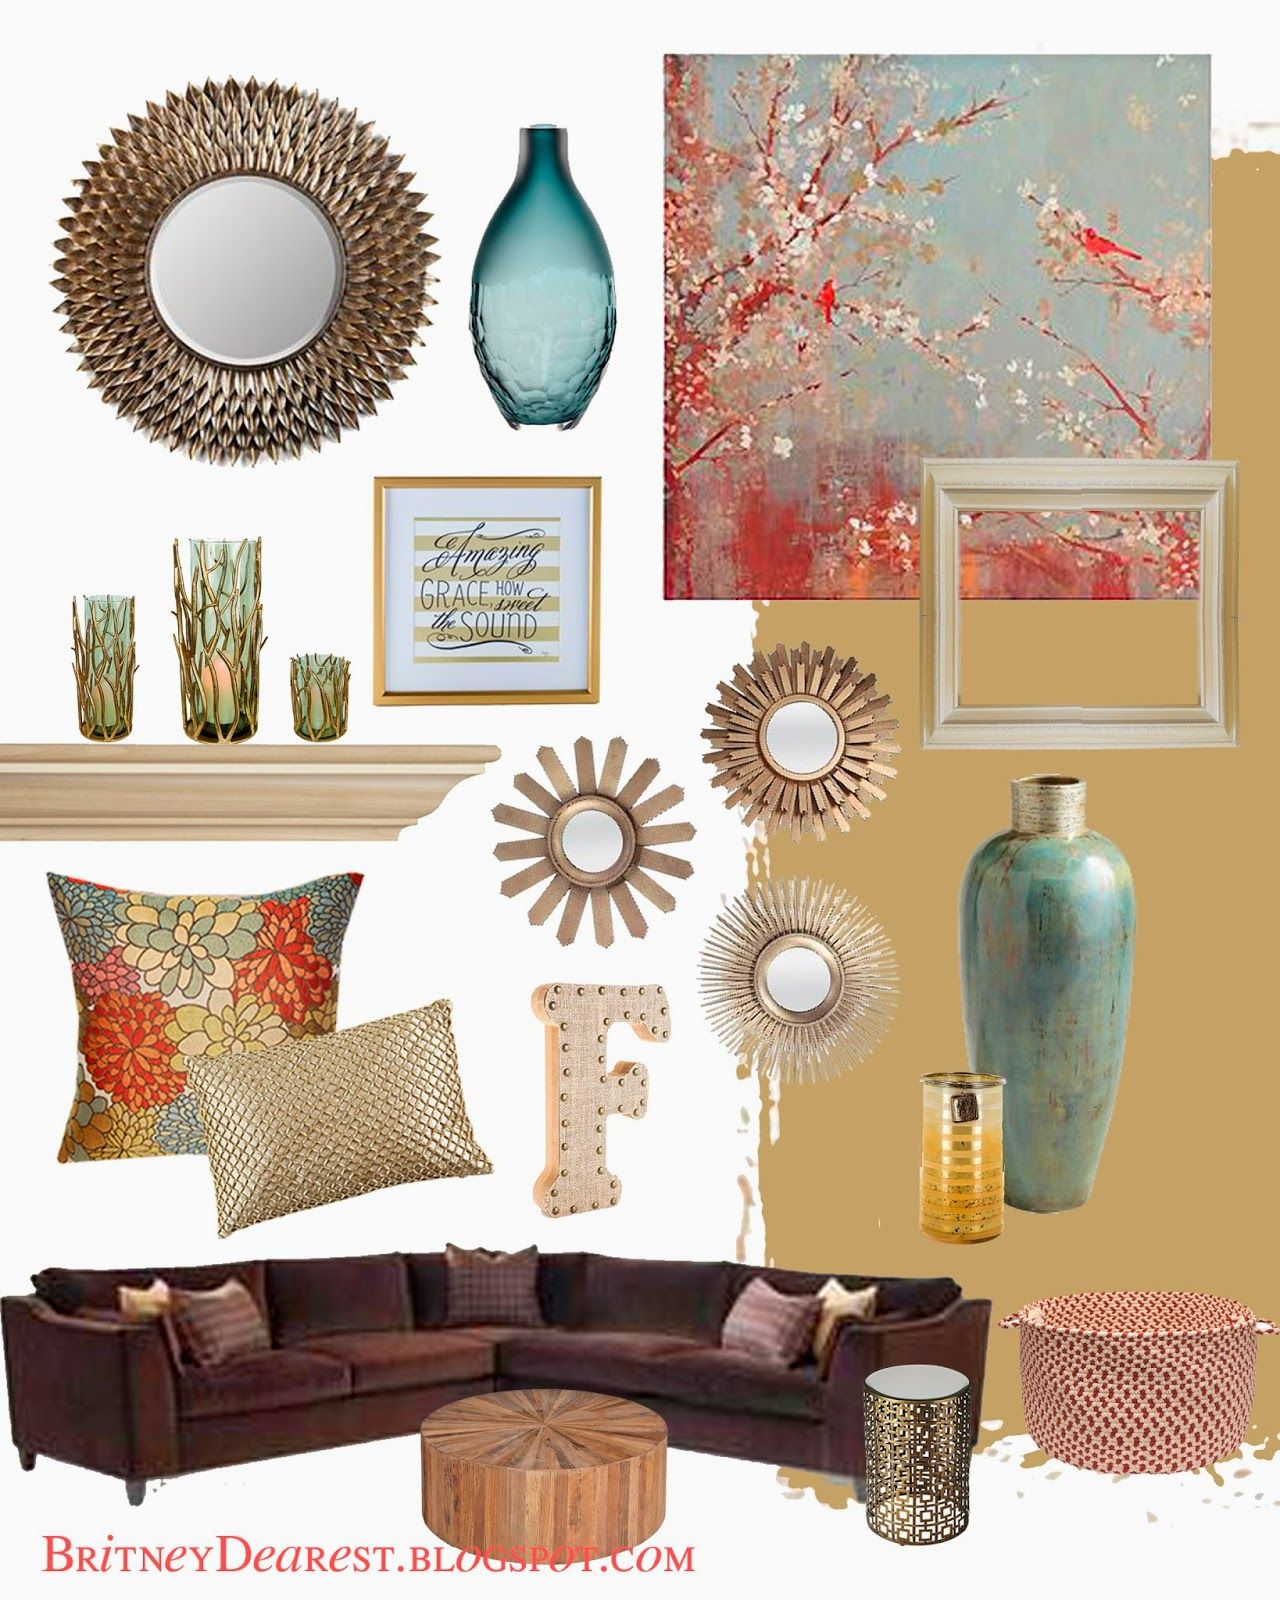 Bedroom Decor Tan living room style ideas {home interior mood board} home decor, tan